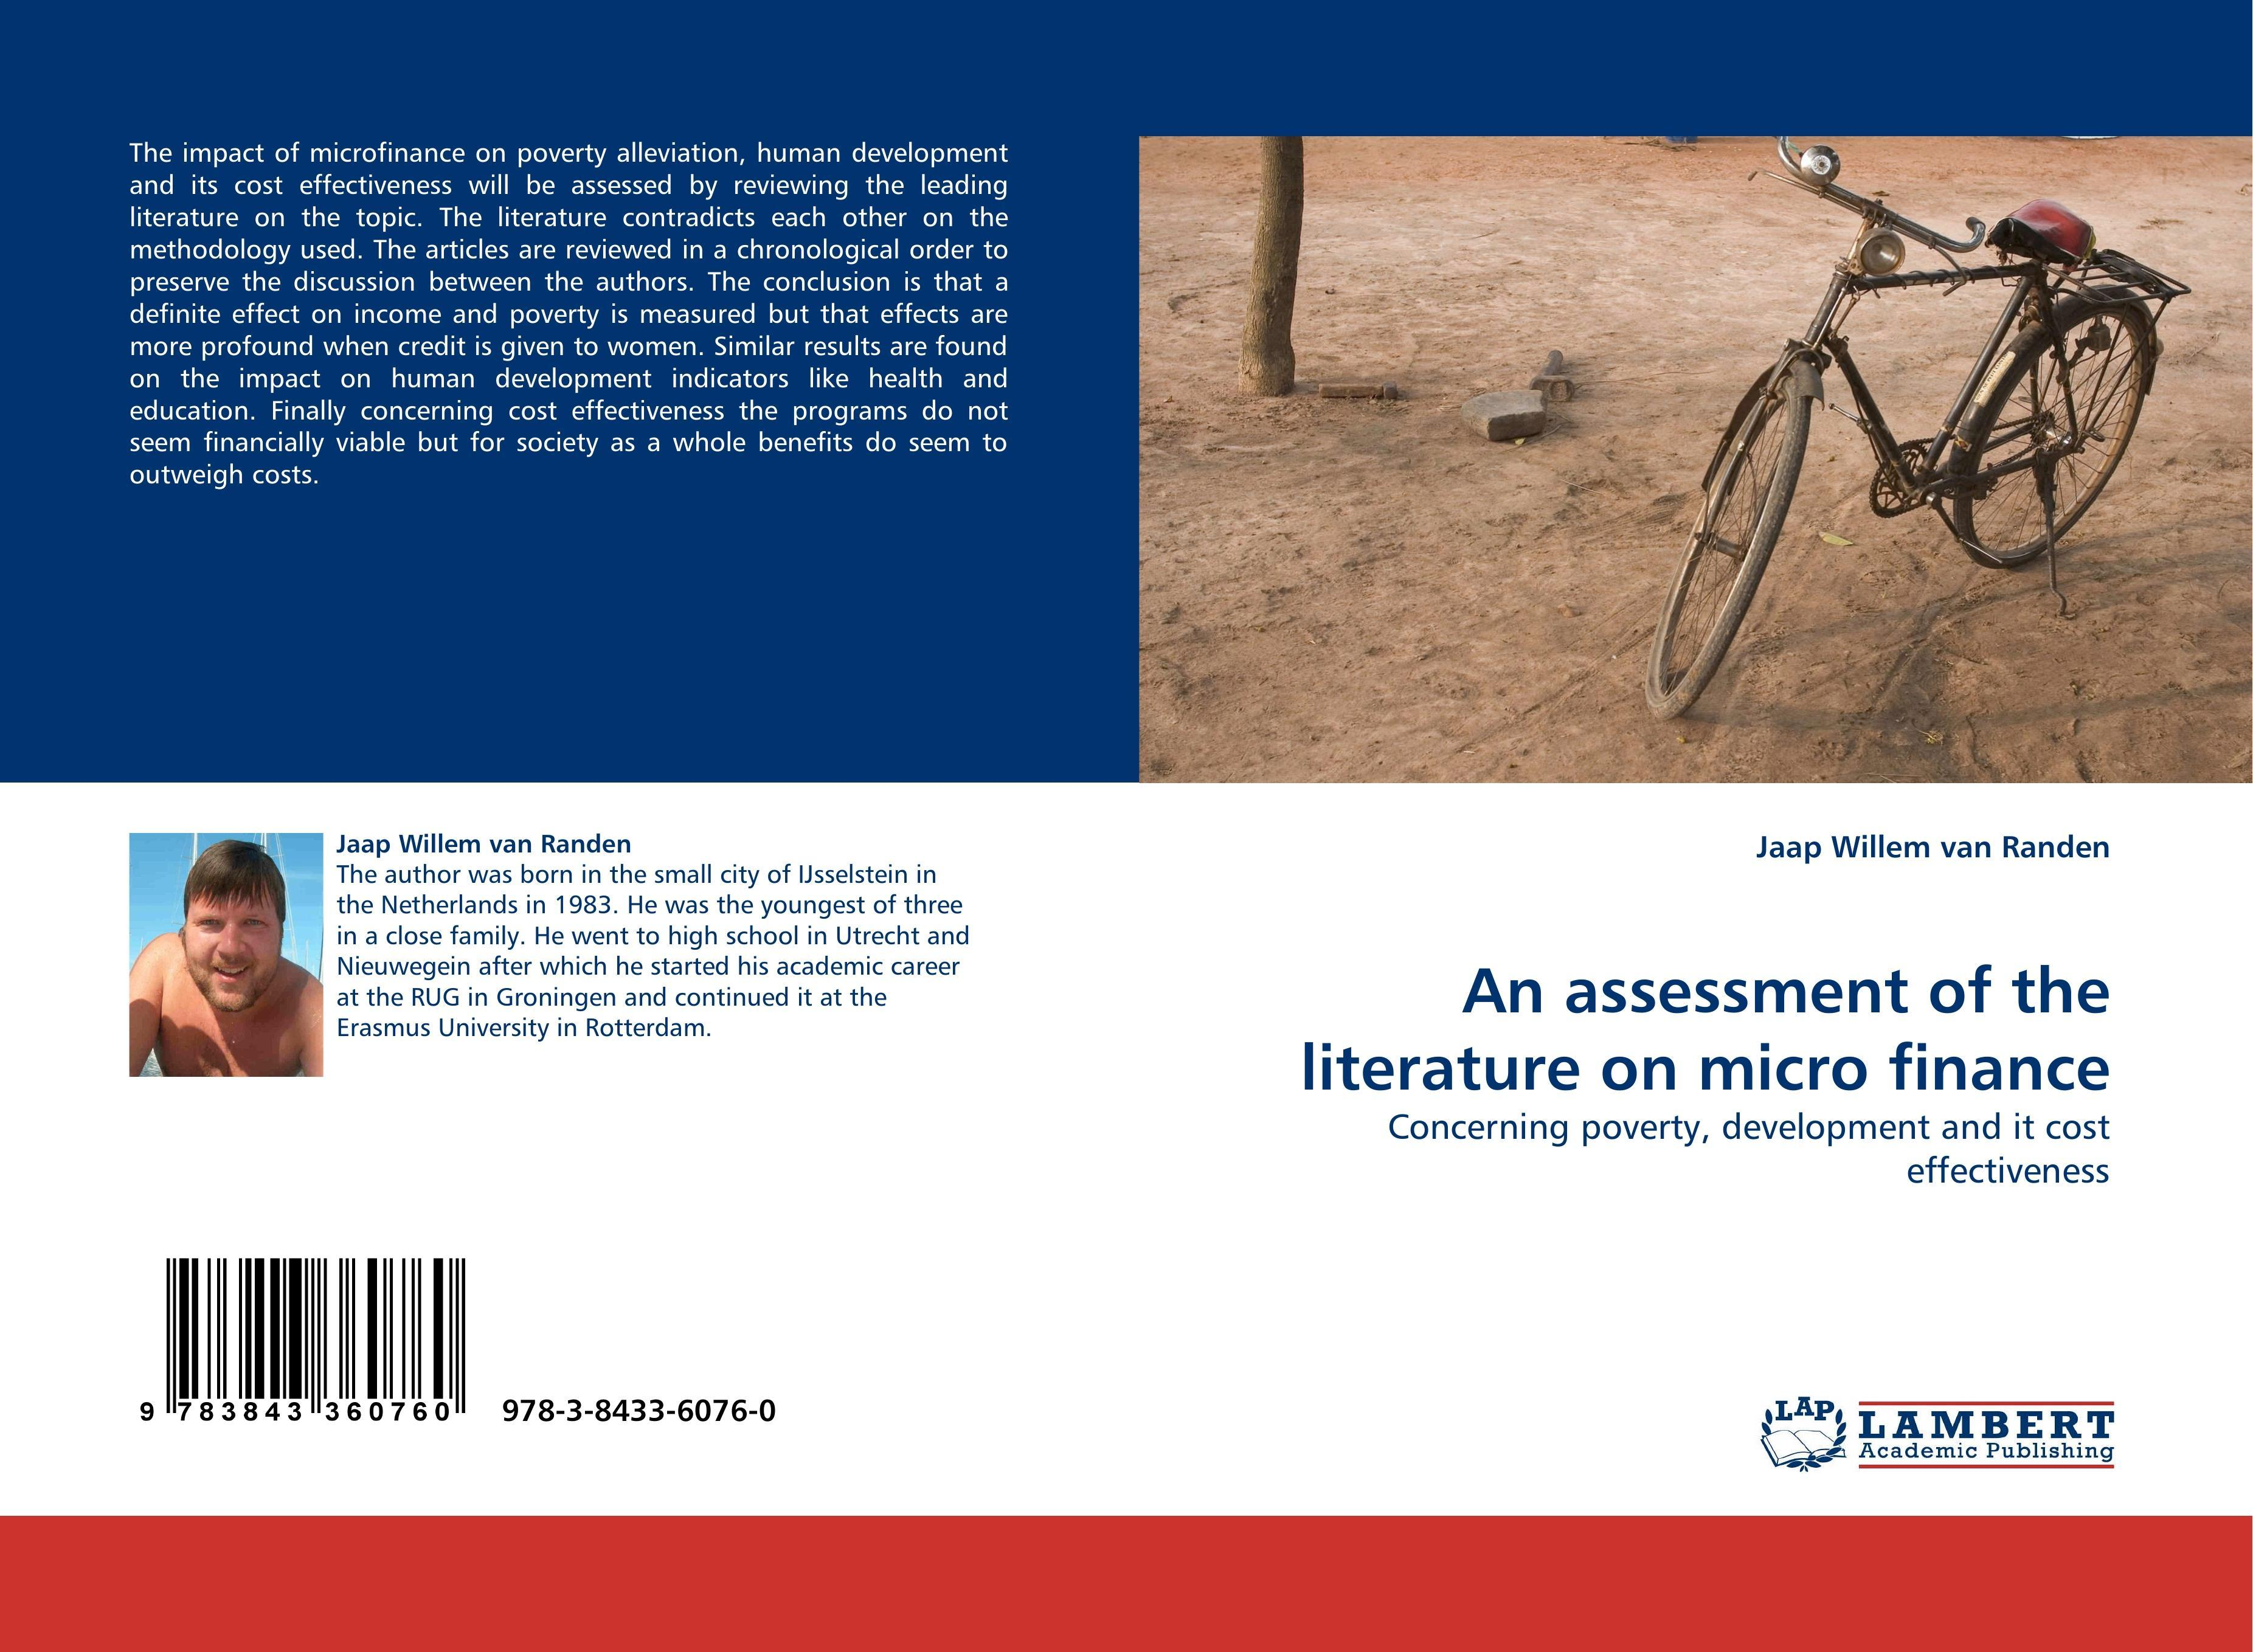 An-assessment-of-the-literature-on-micro-finance-Jaap-Will-9783843360760